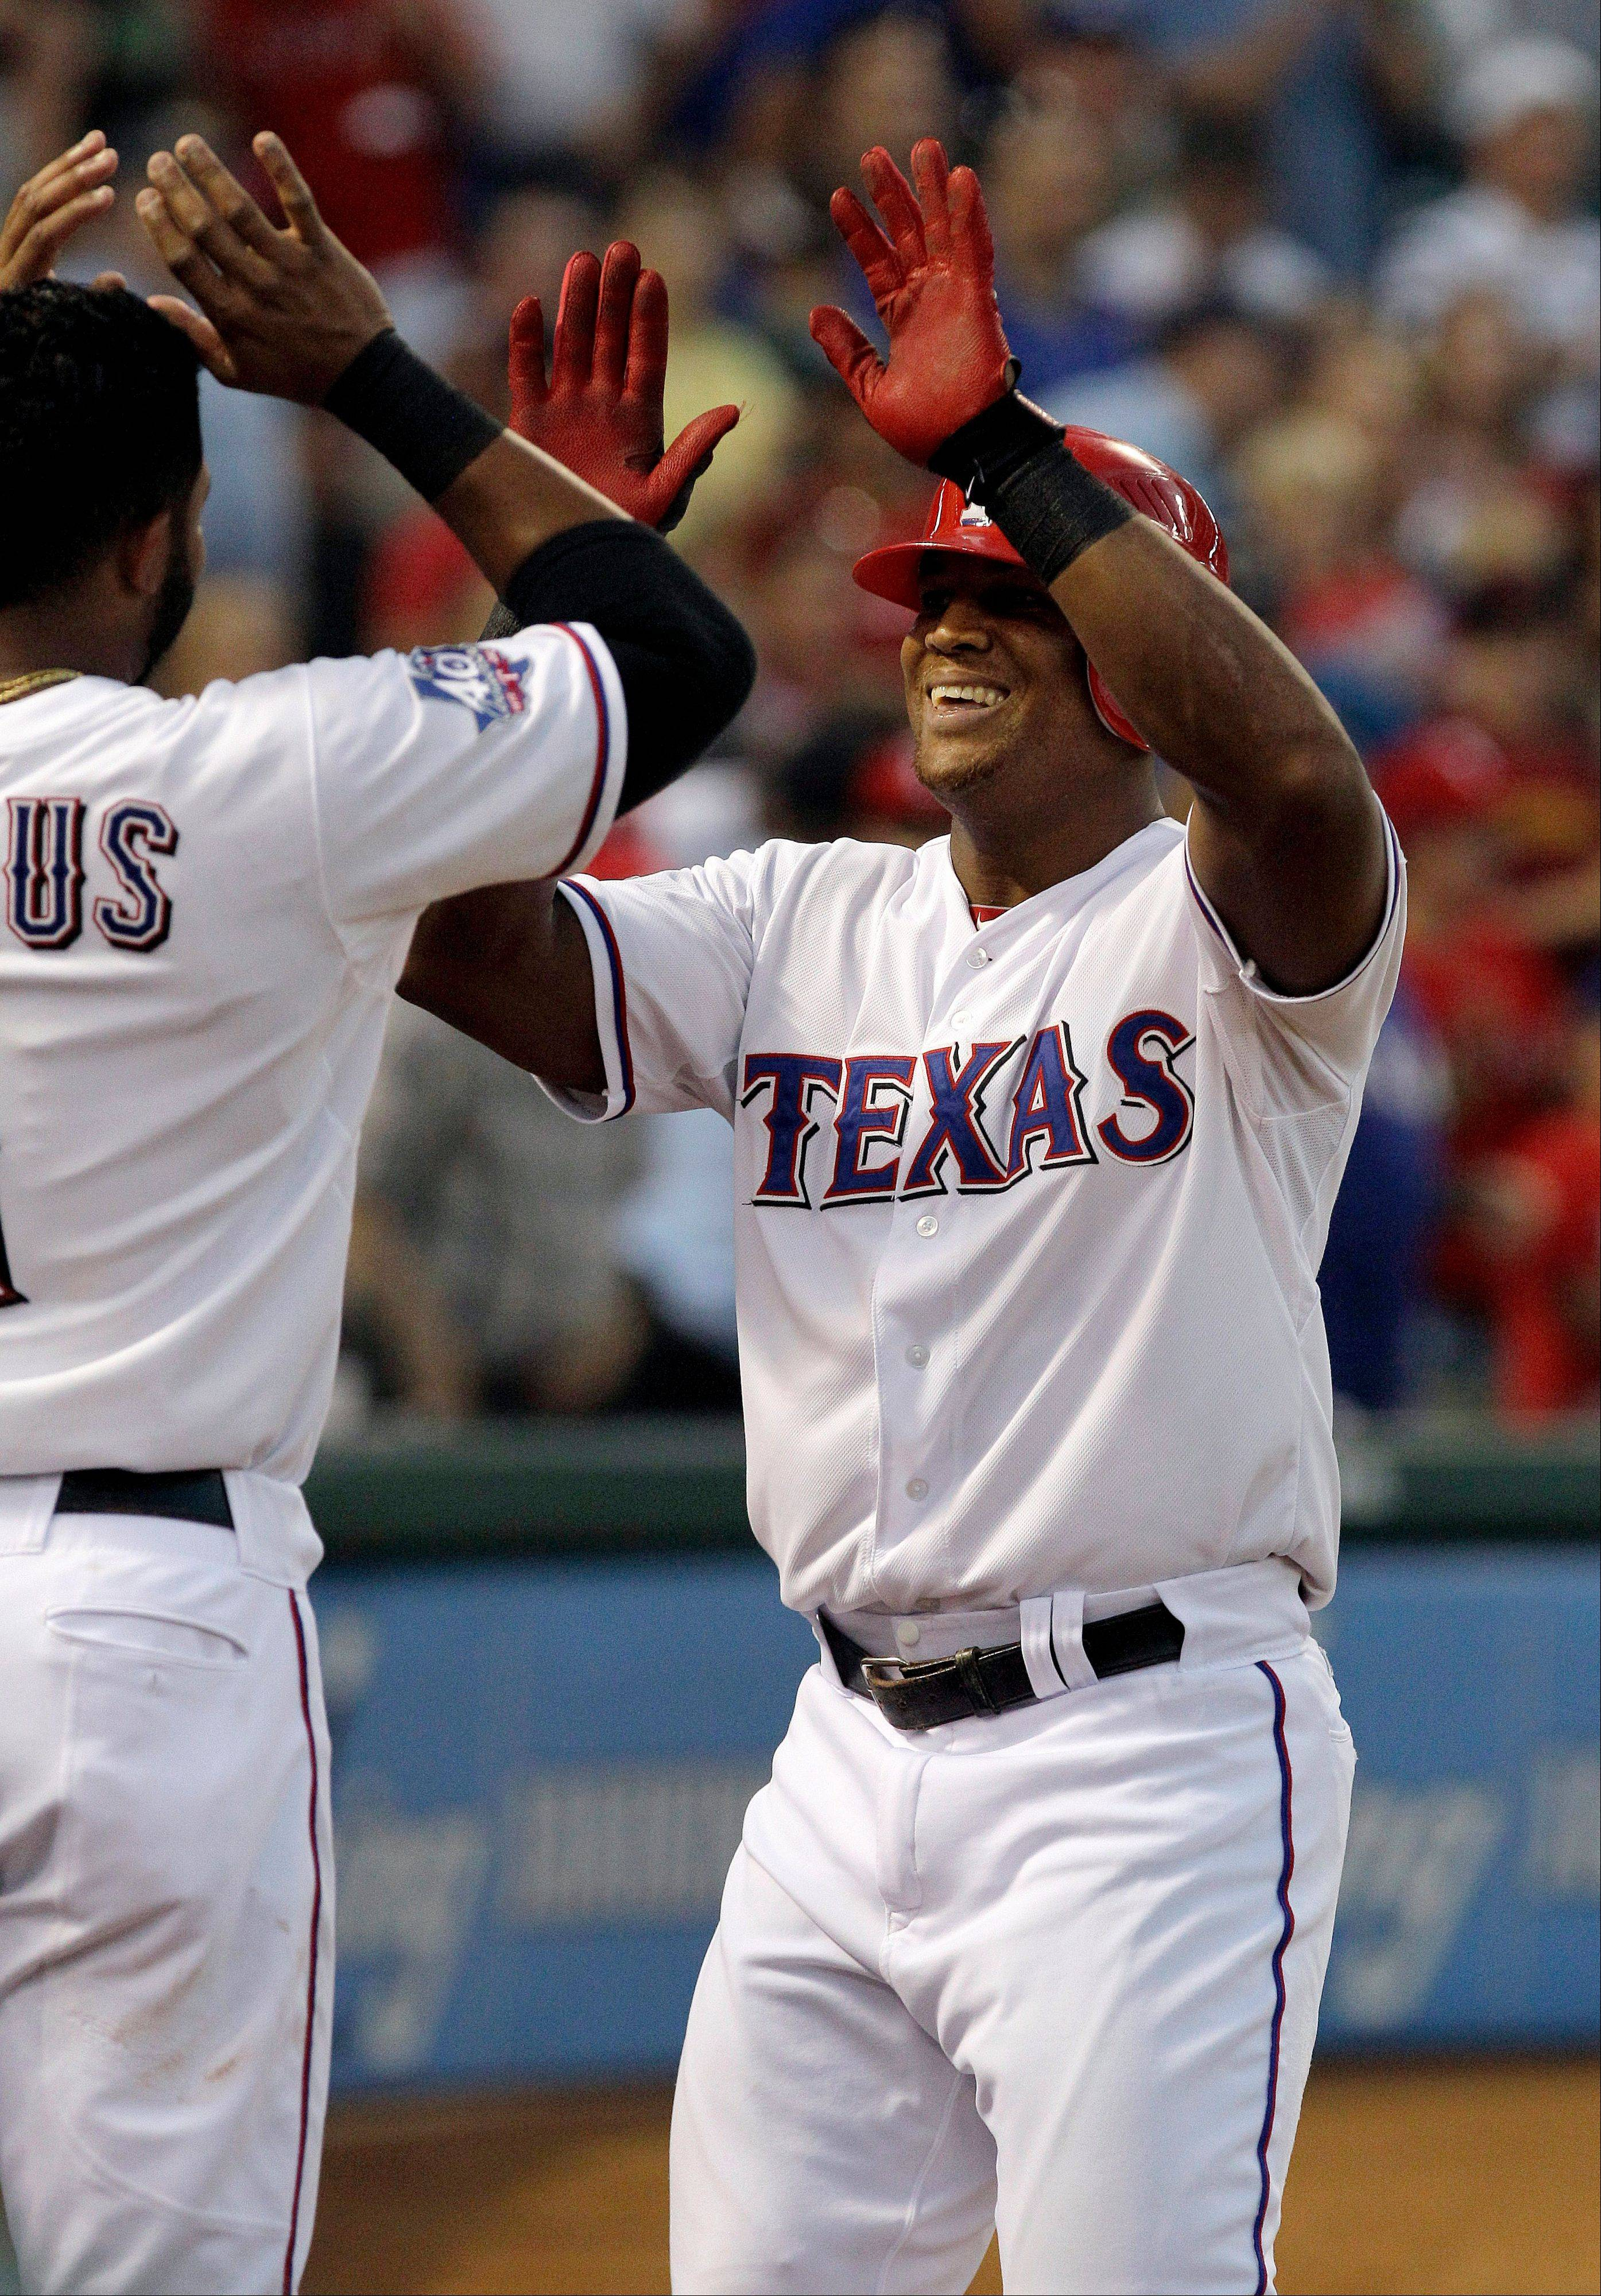 The Rangers' Adrian Beltre, right, celebrates with Elvis Andrus after Beltre's home run during the fourth inning Wednesday at home against Baltimore.